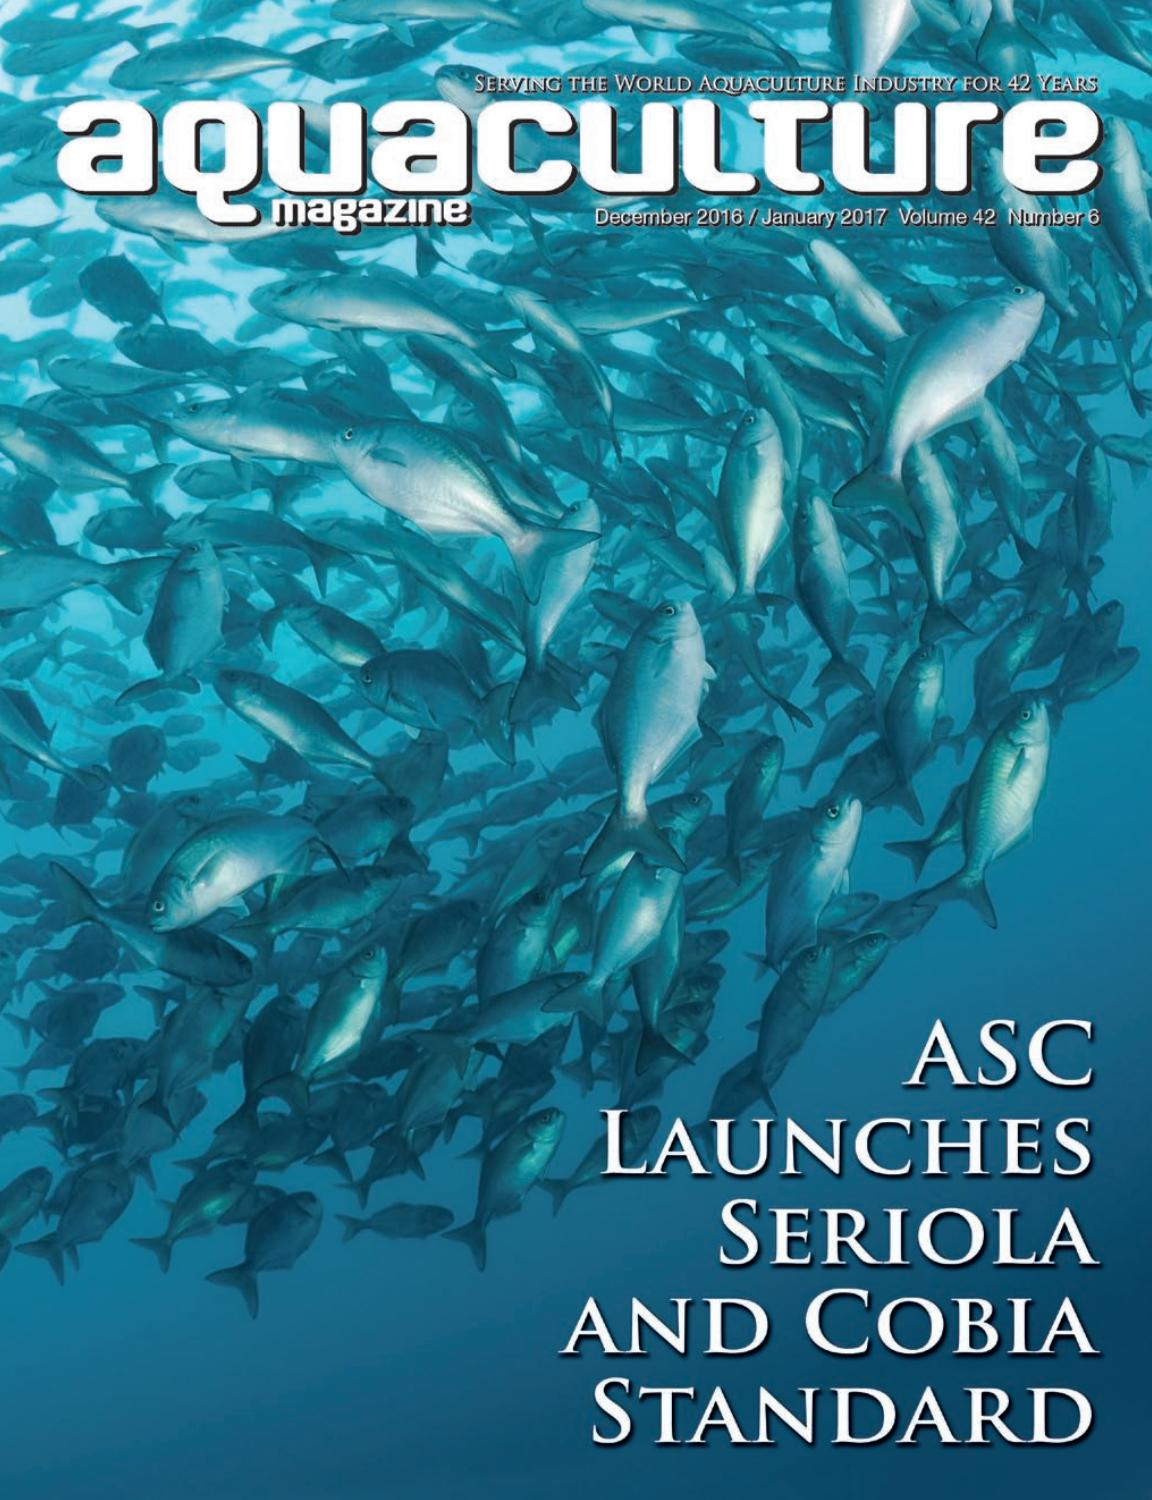 Aquaculture Magazine December 2016 / January 2017 Vol. 42 No. 6 by Aquaculture Magazine - Issuu